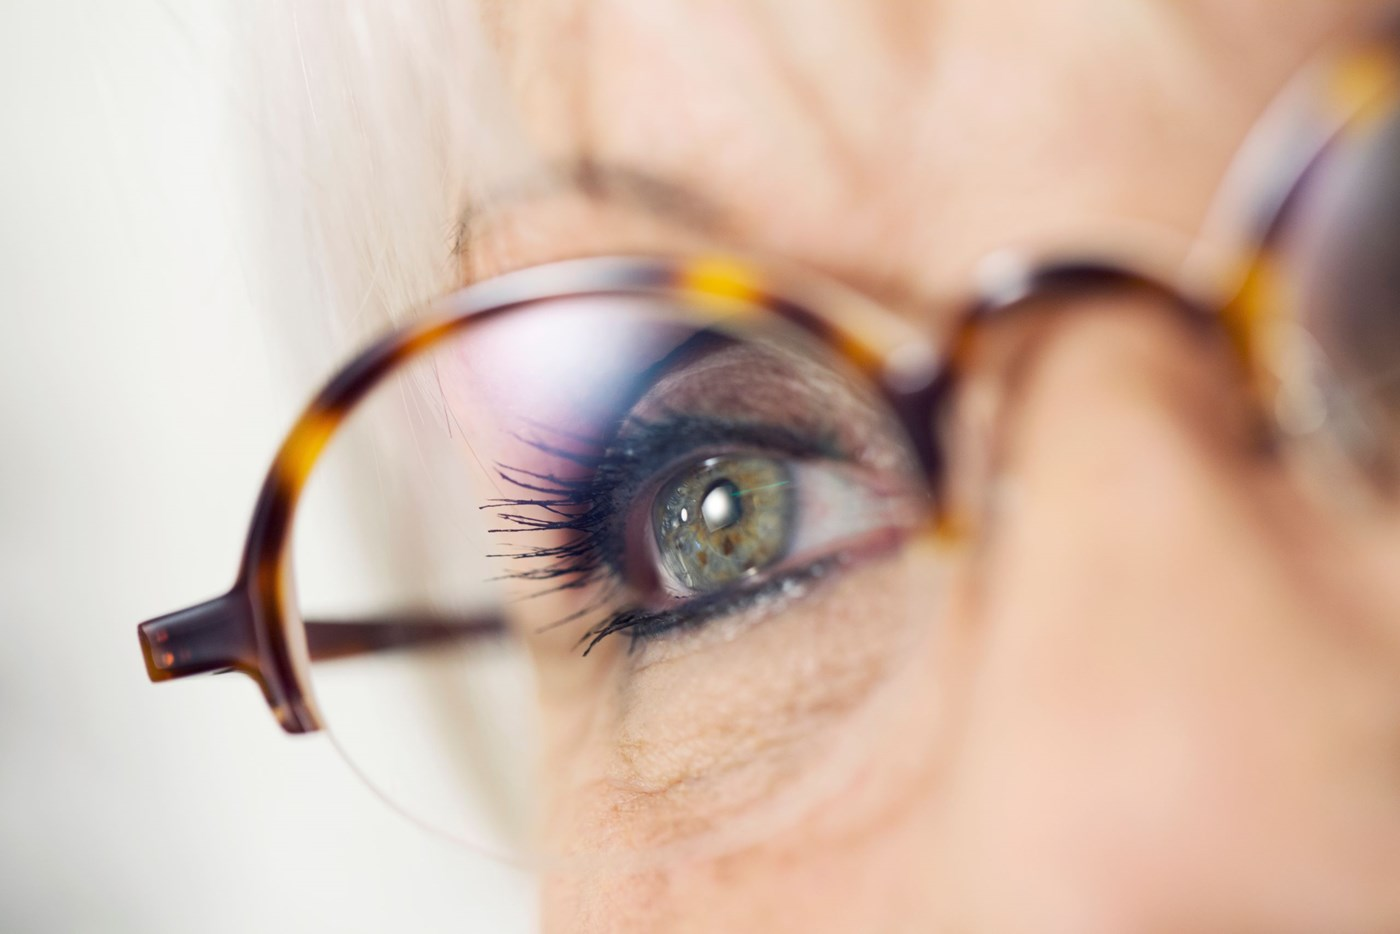 Up close shot of older female eye behind eyeglass lenses